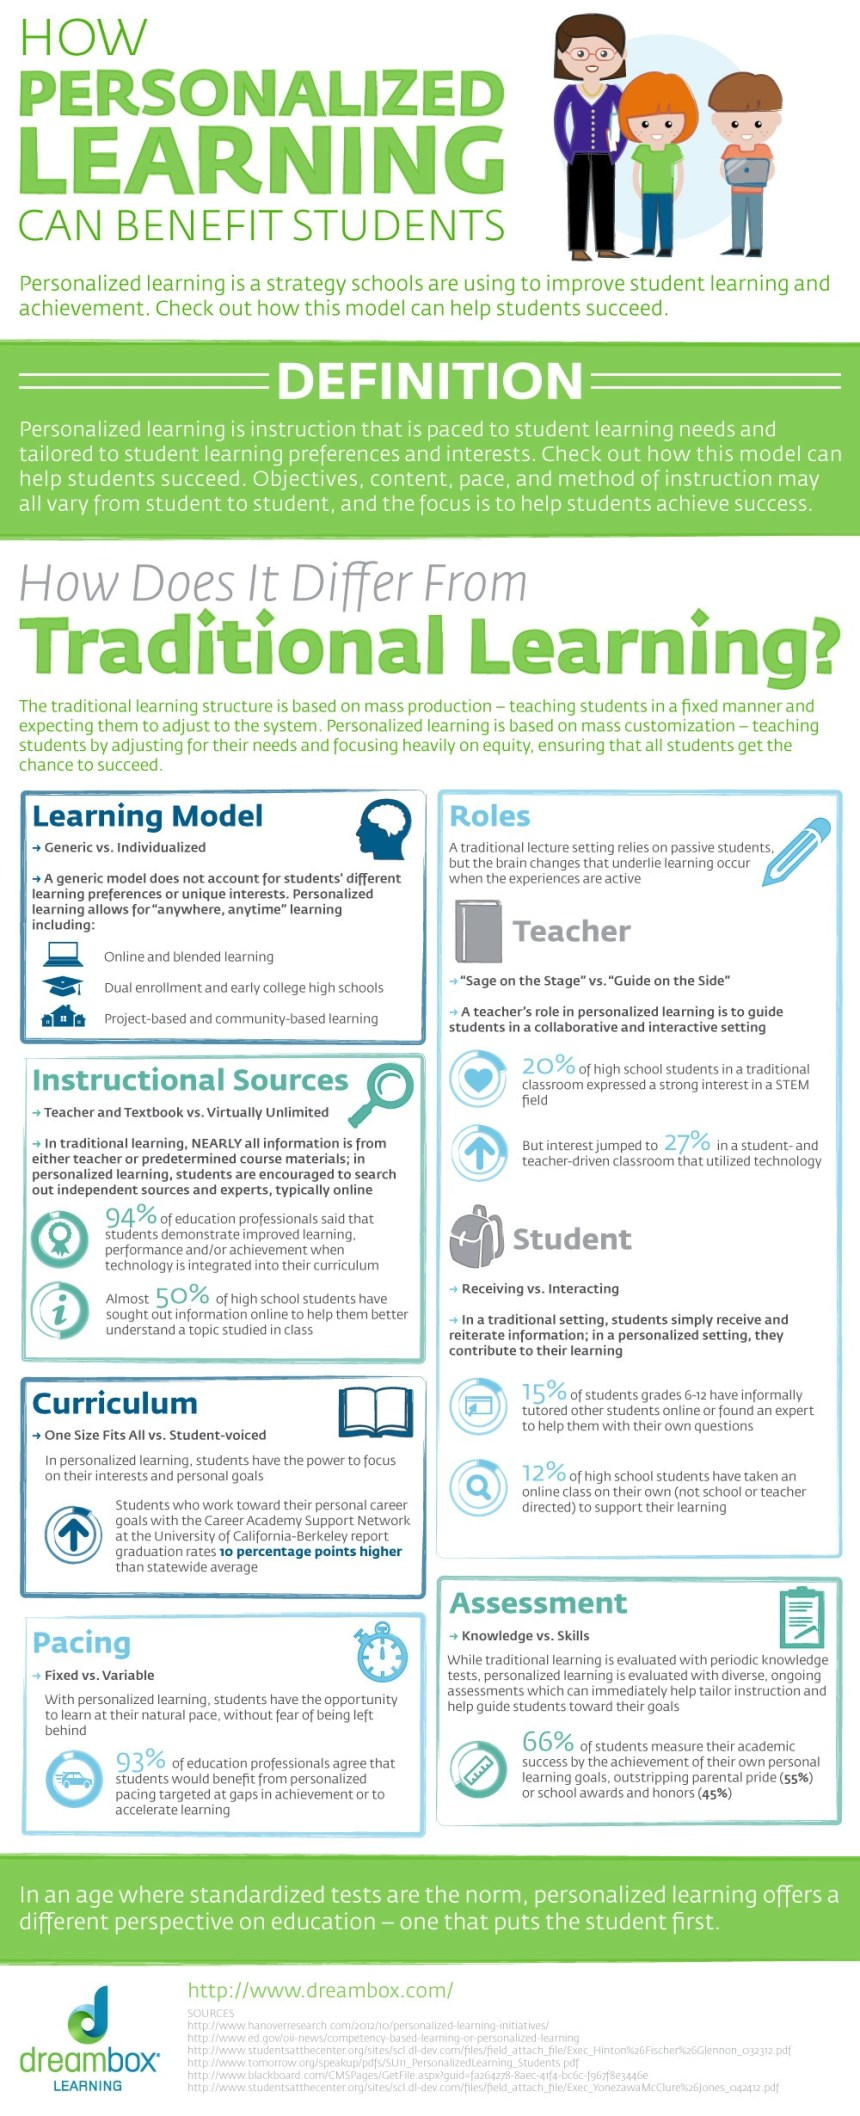 How-Personalized-Learning-Can-Benefit-Students-Infographic